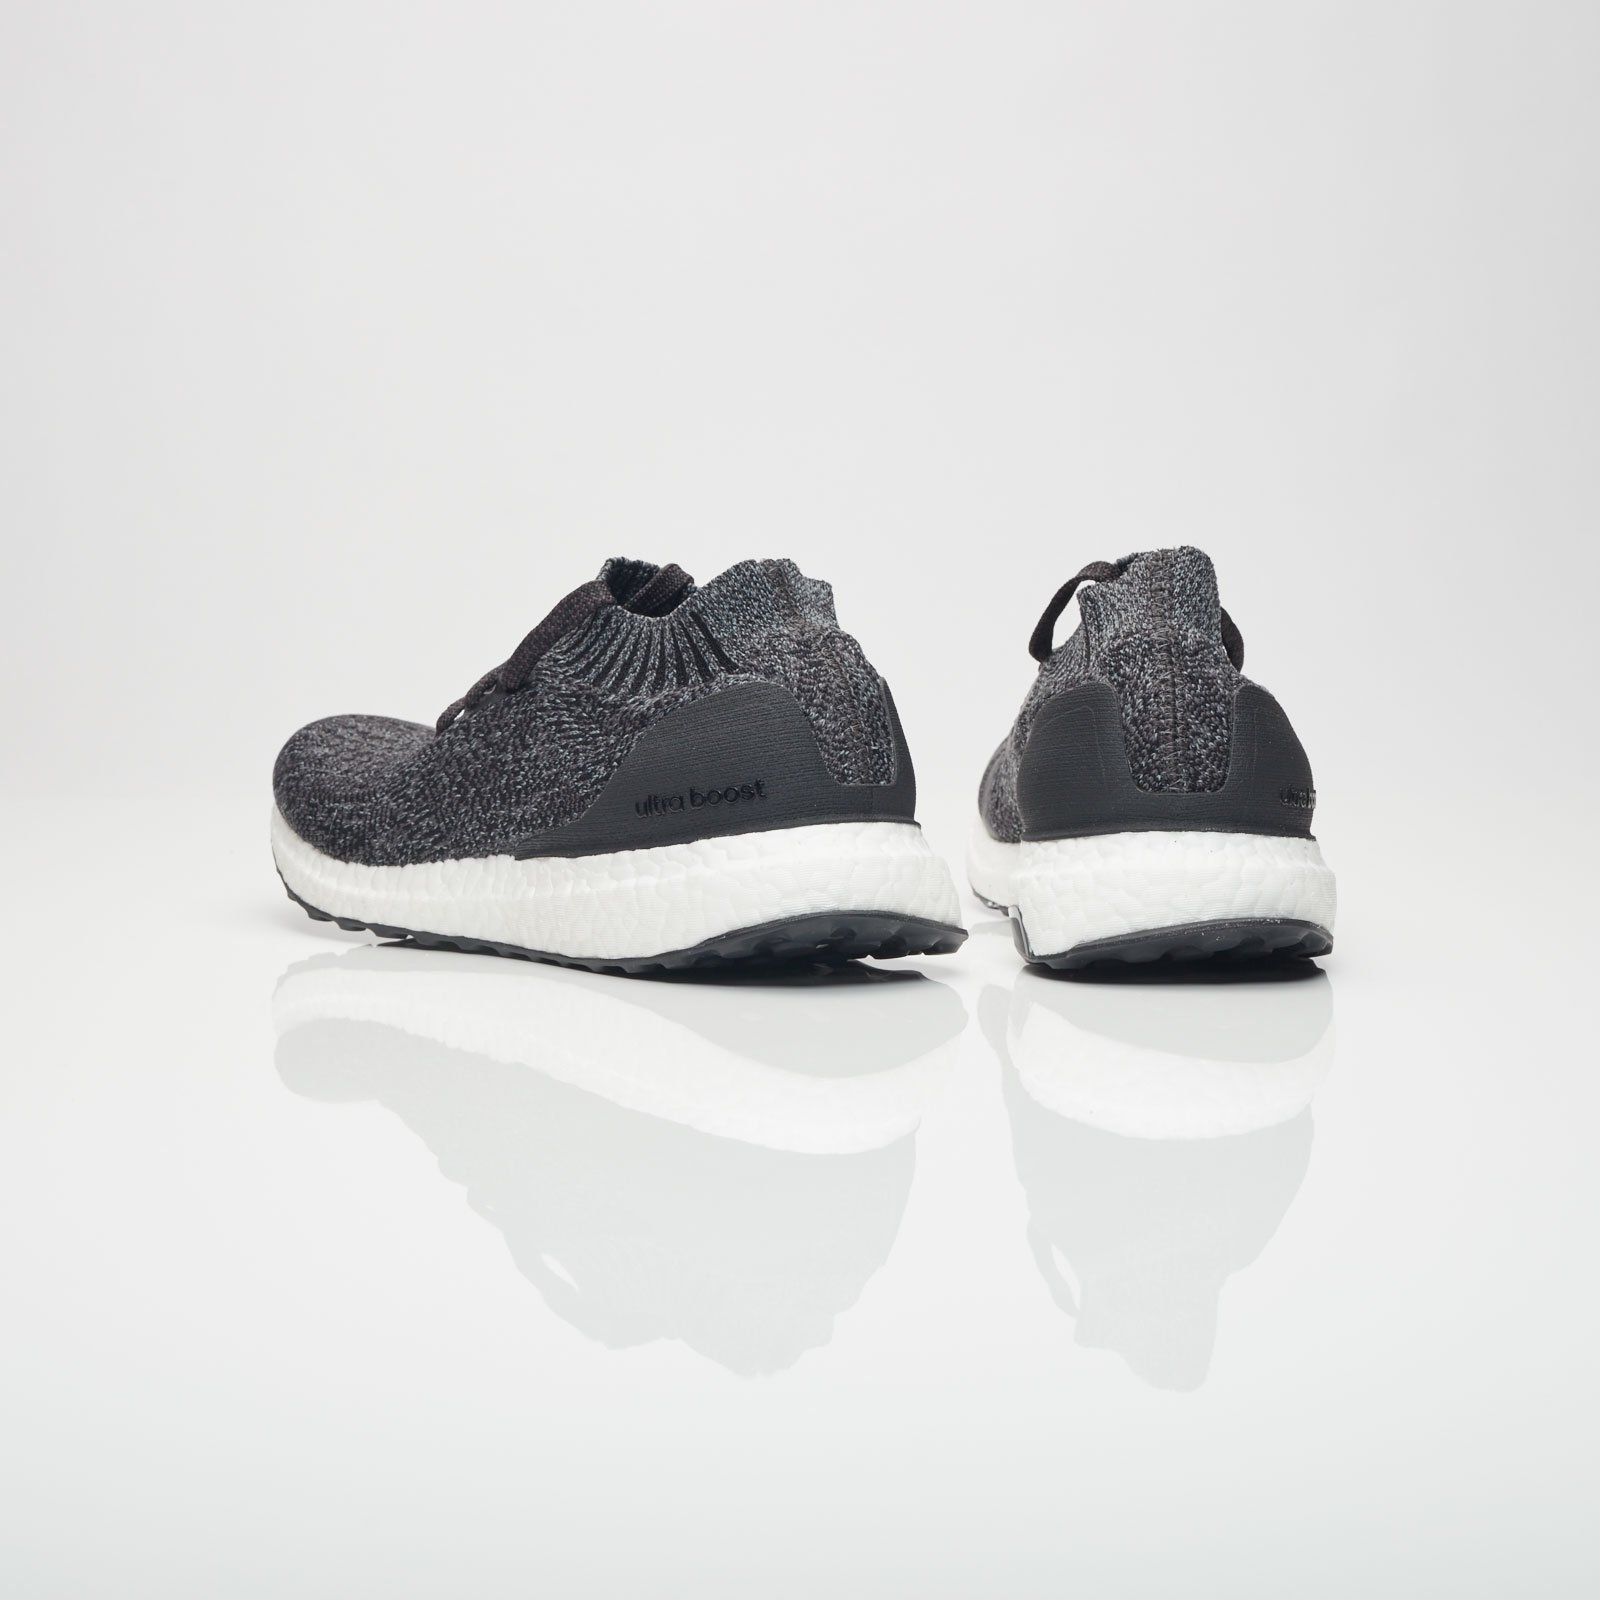 397a02e19 adidas UltraBoost Uncaged W - S80779 - Sneakersnstuff